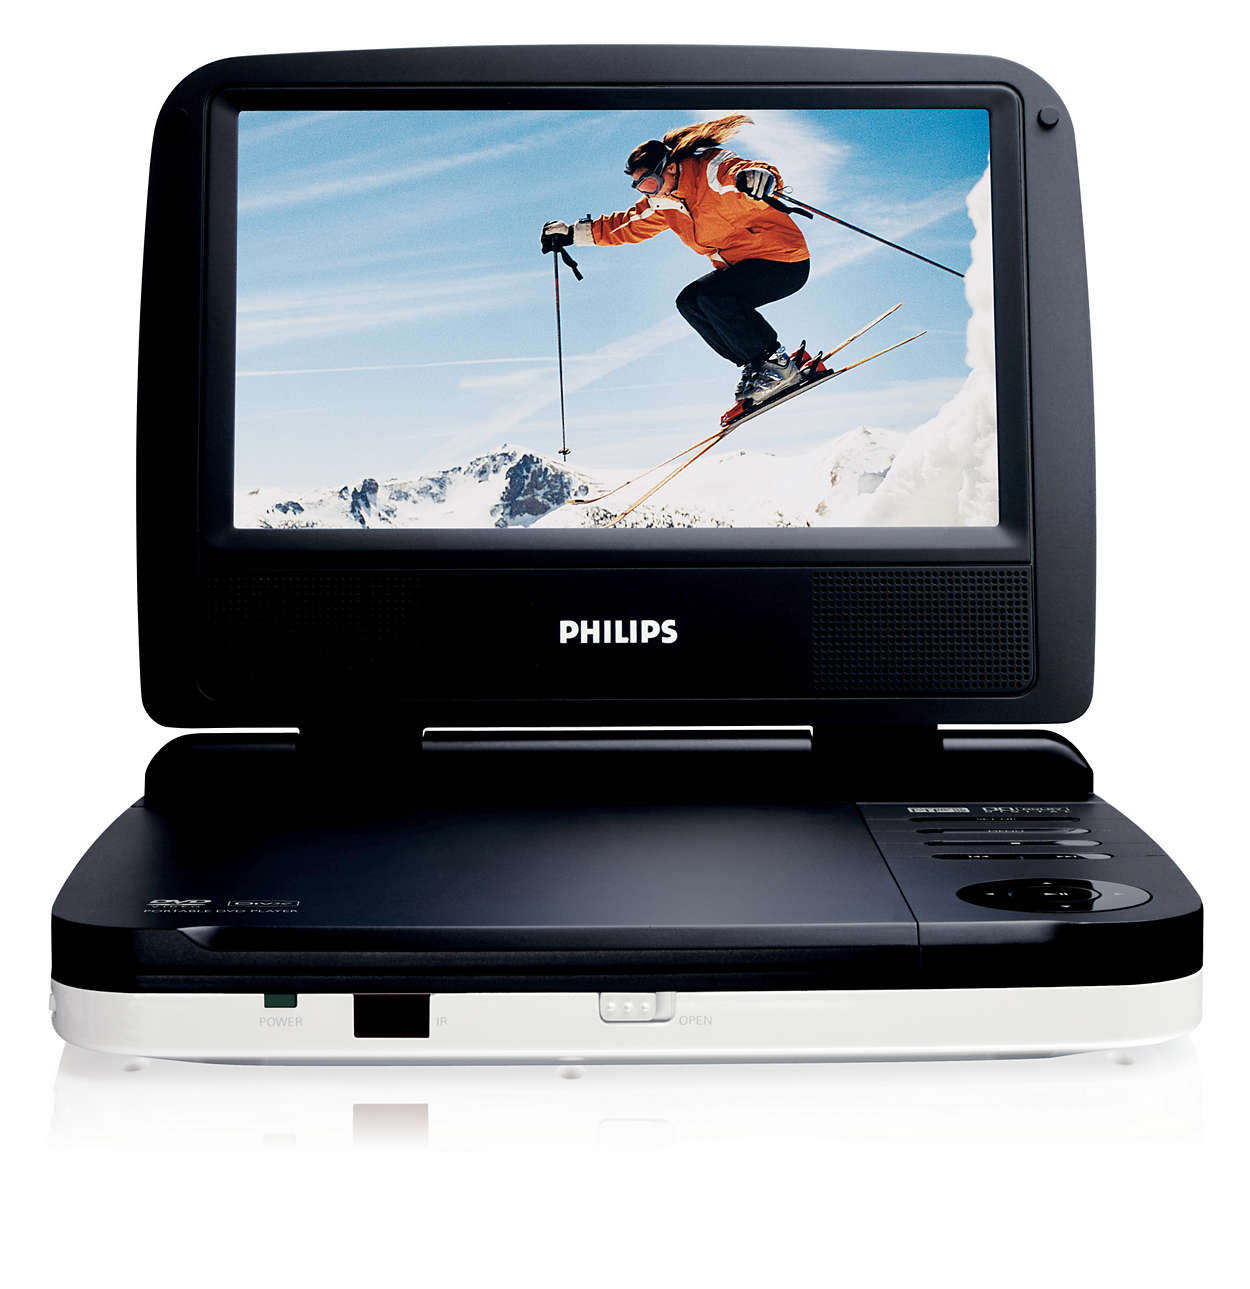 philips portable dvd player user manual